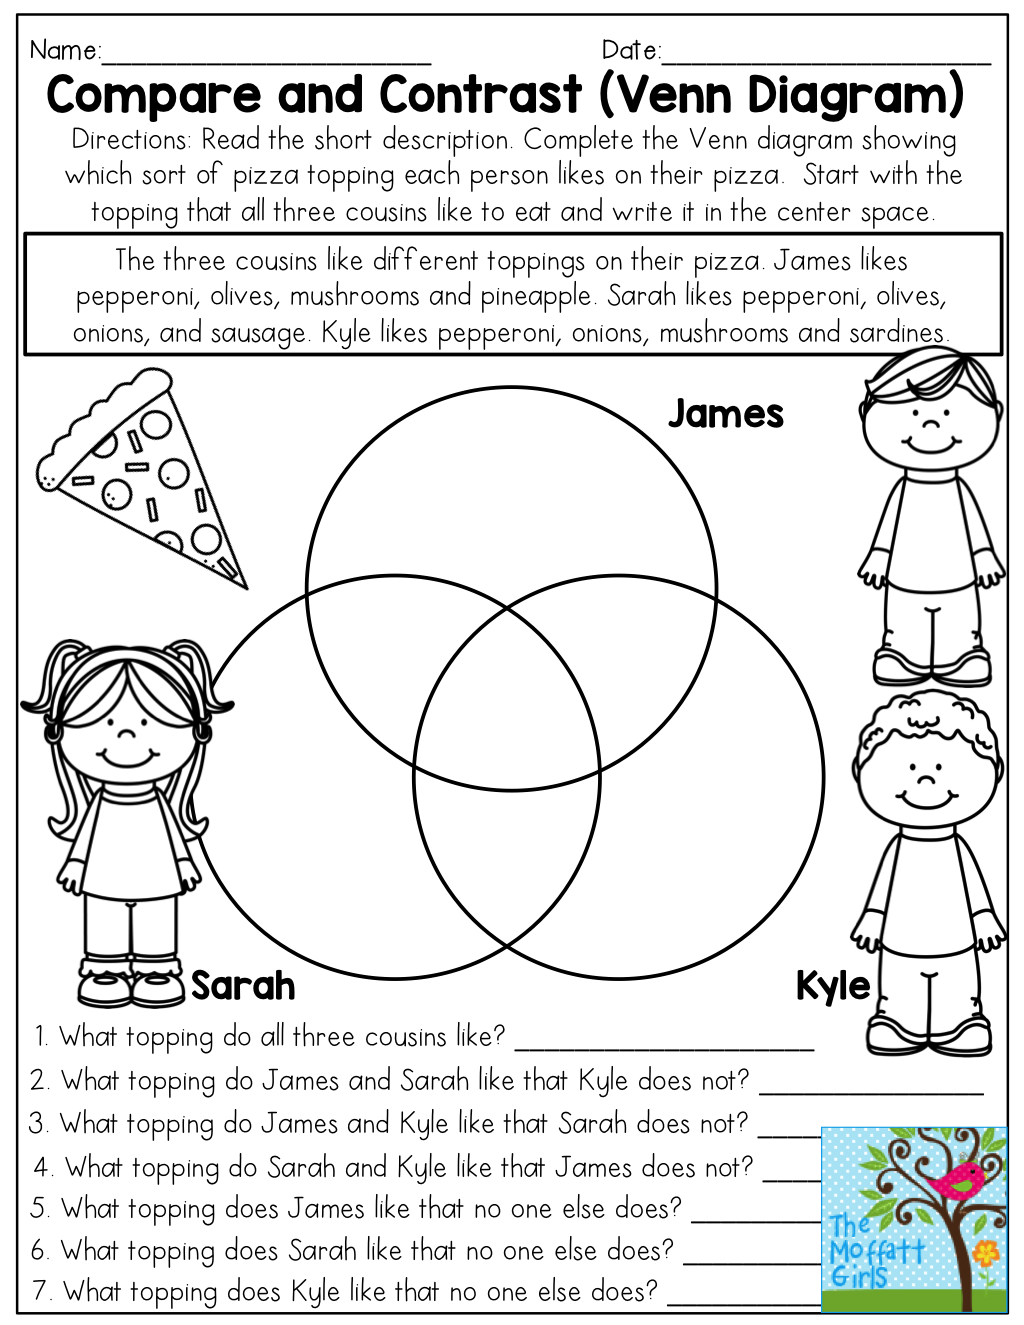 compare and contrast venn diagram 3 things read the short description complete the venn diagram and answer the questions teaching core concepts for 3rd  [ 1024 x 1325 Pixel ]